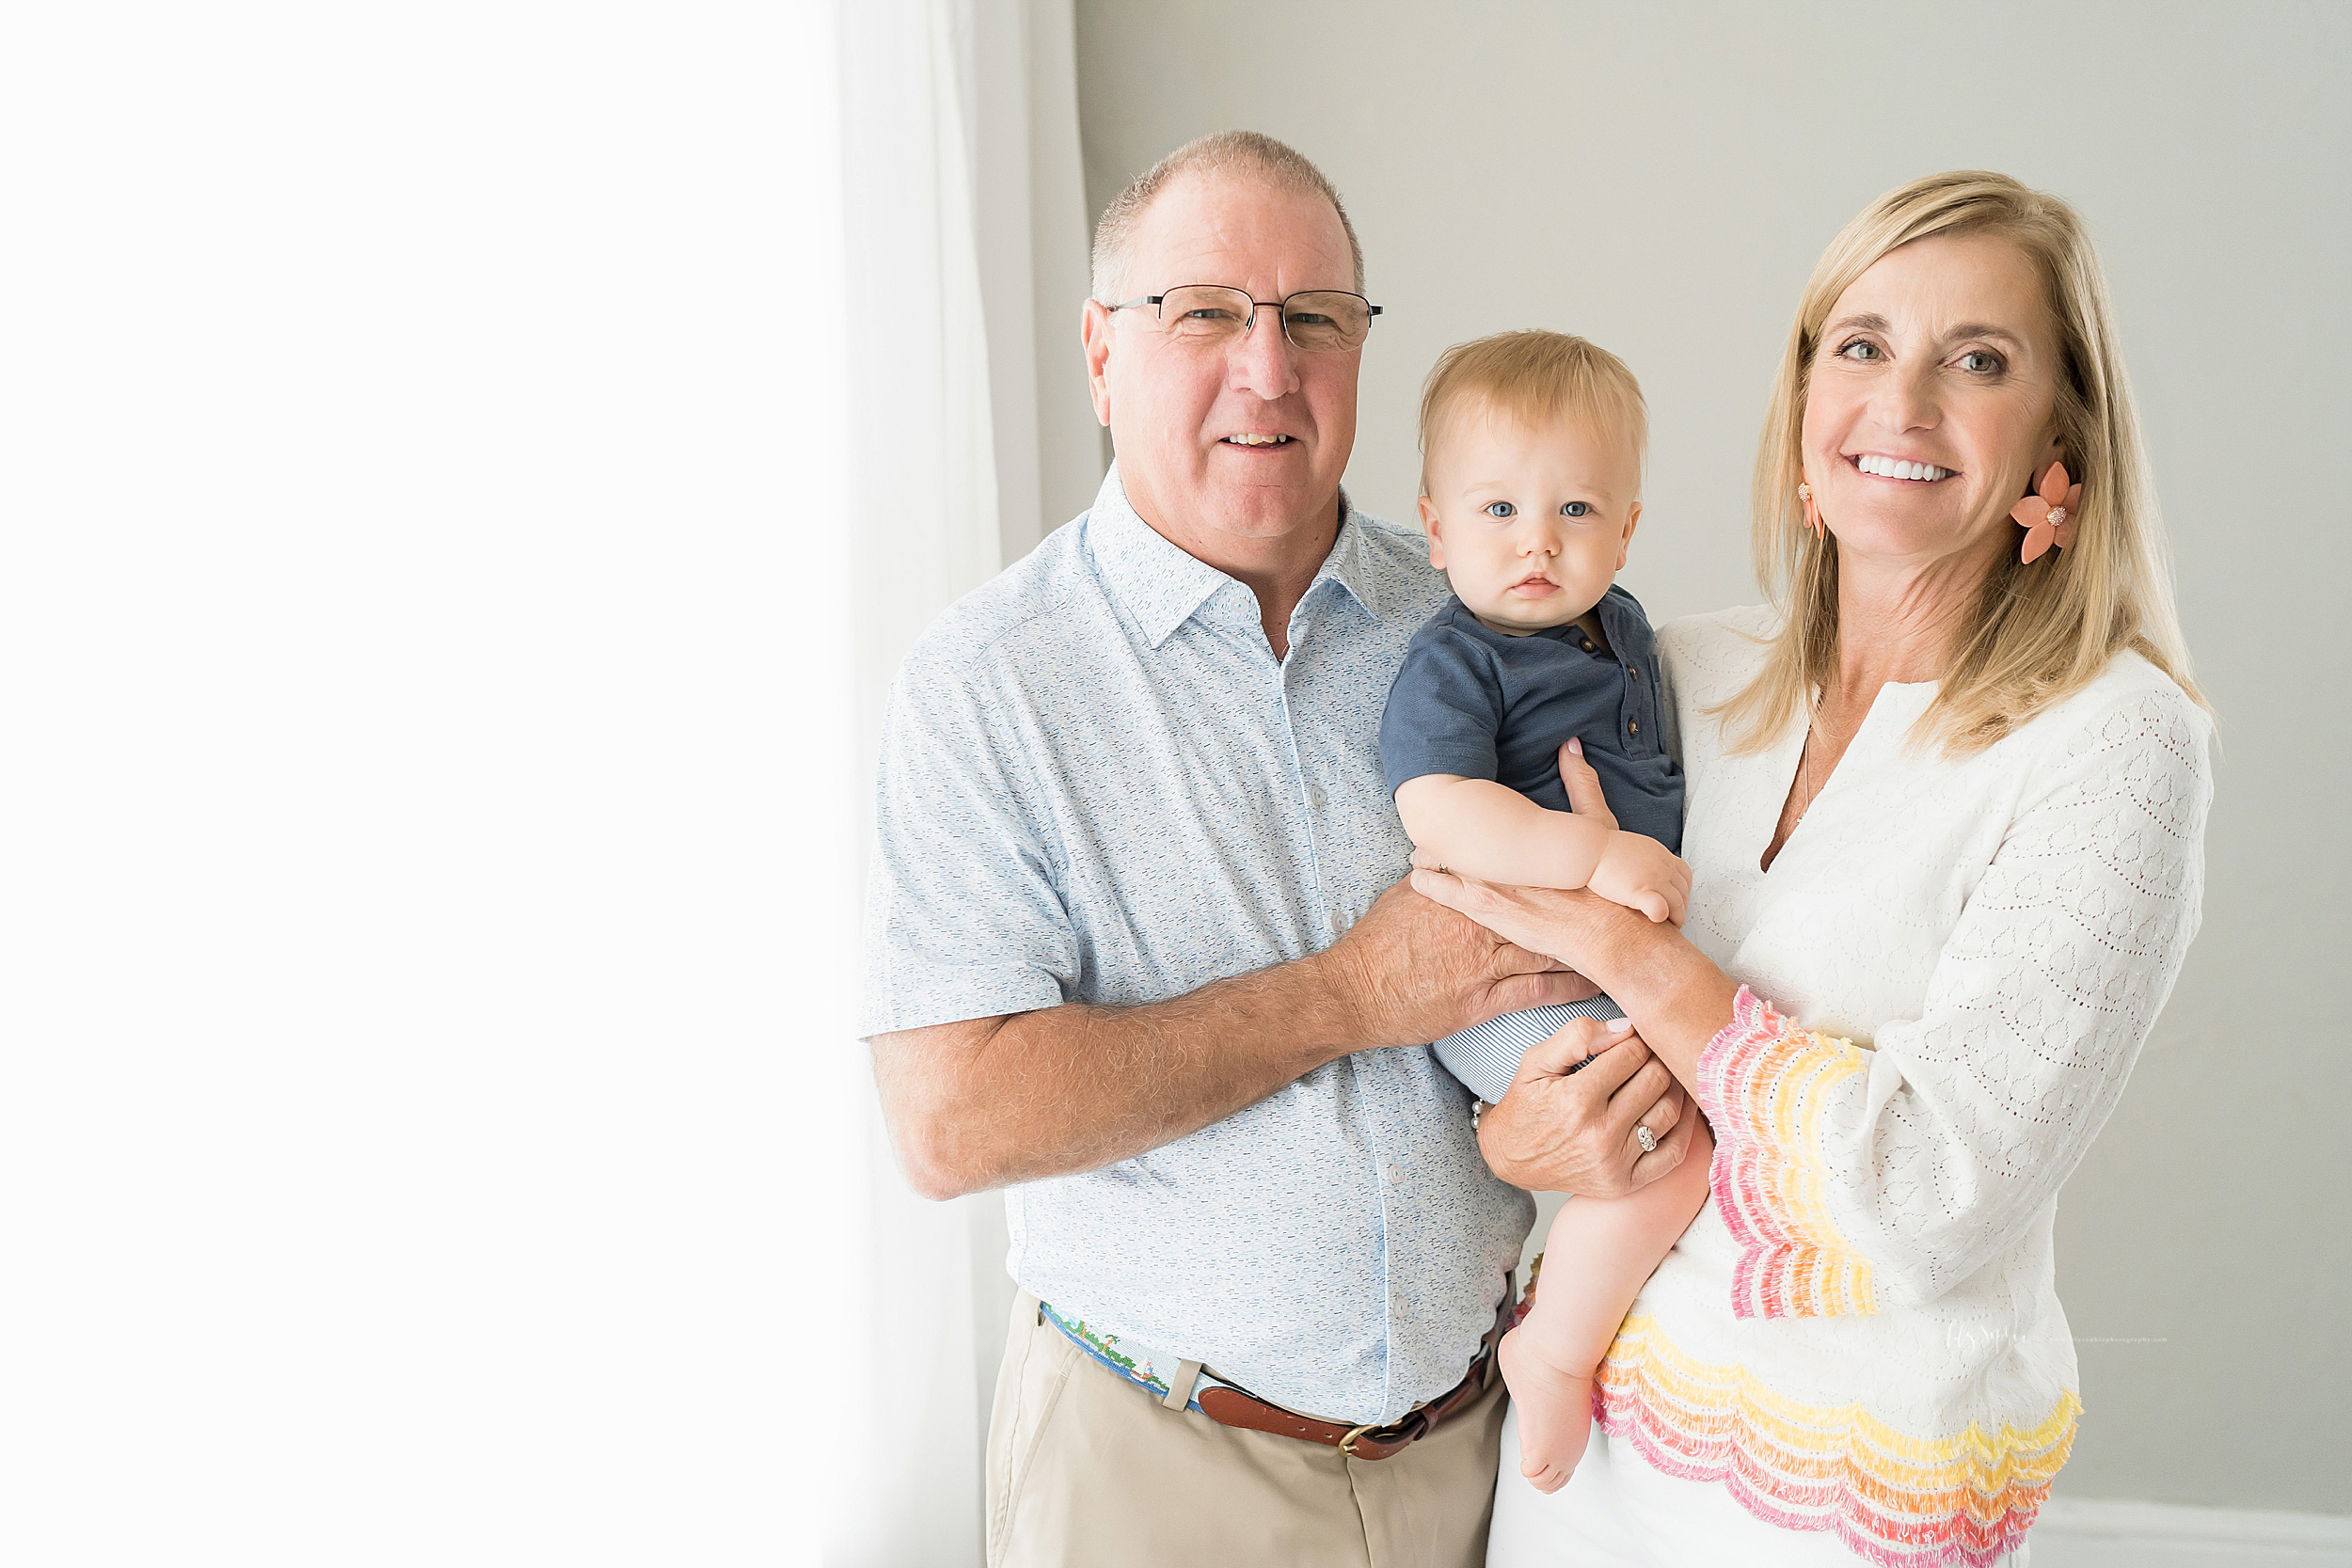 Family photo of grandparents with their grandson taken in Atlanta in a natural light studio.